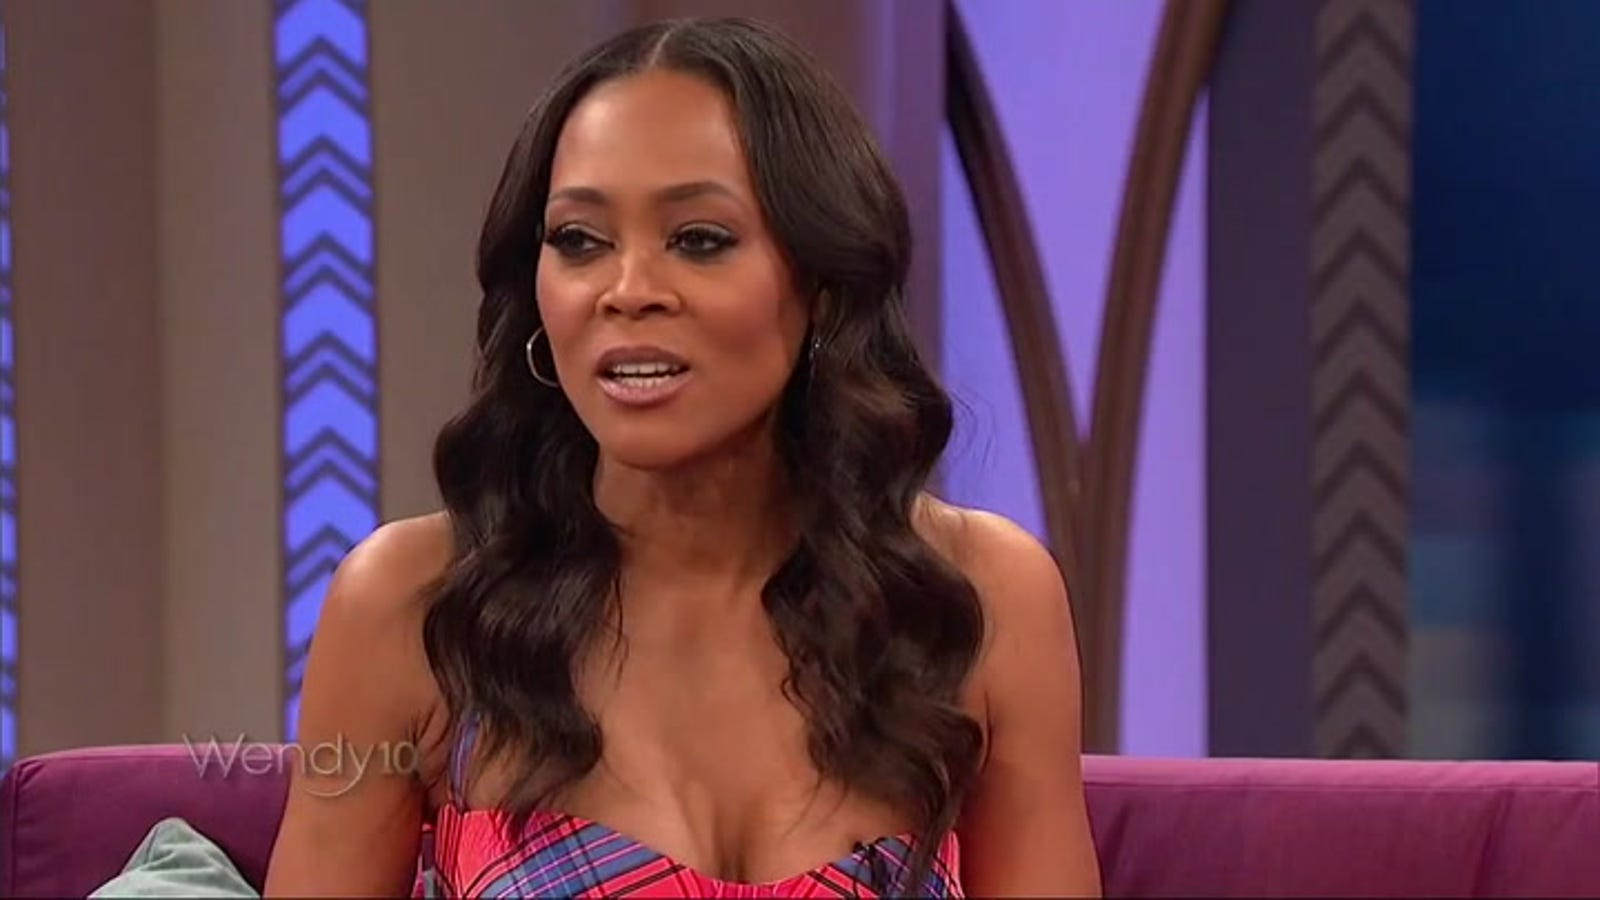 Fotos Robin Givens nudes (13 foto and video), Topless, Leaked, Twitter, cameltoe 2018